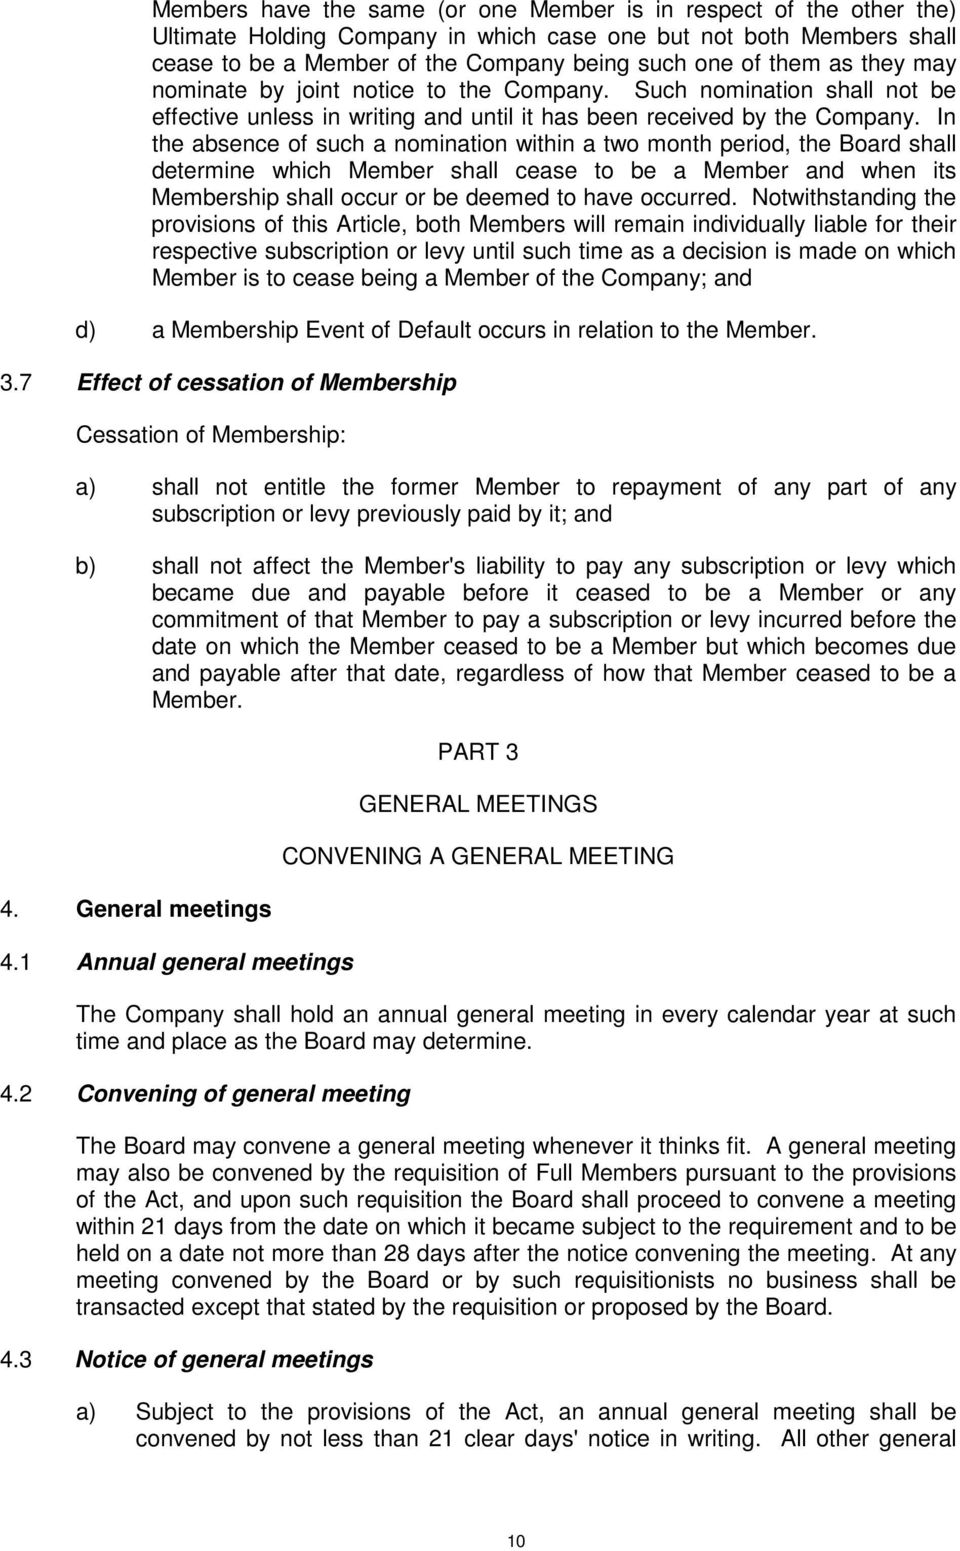 In the absence of such a nomination within a two month period, the Board shall determine which Member shall cease to be a Member and when its Membership shall occur or be deemed to have occurred.